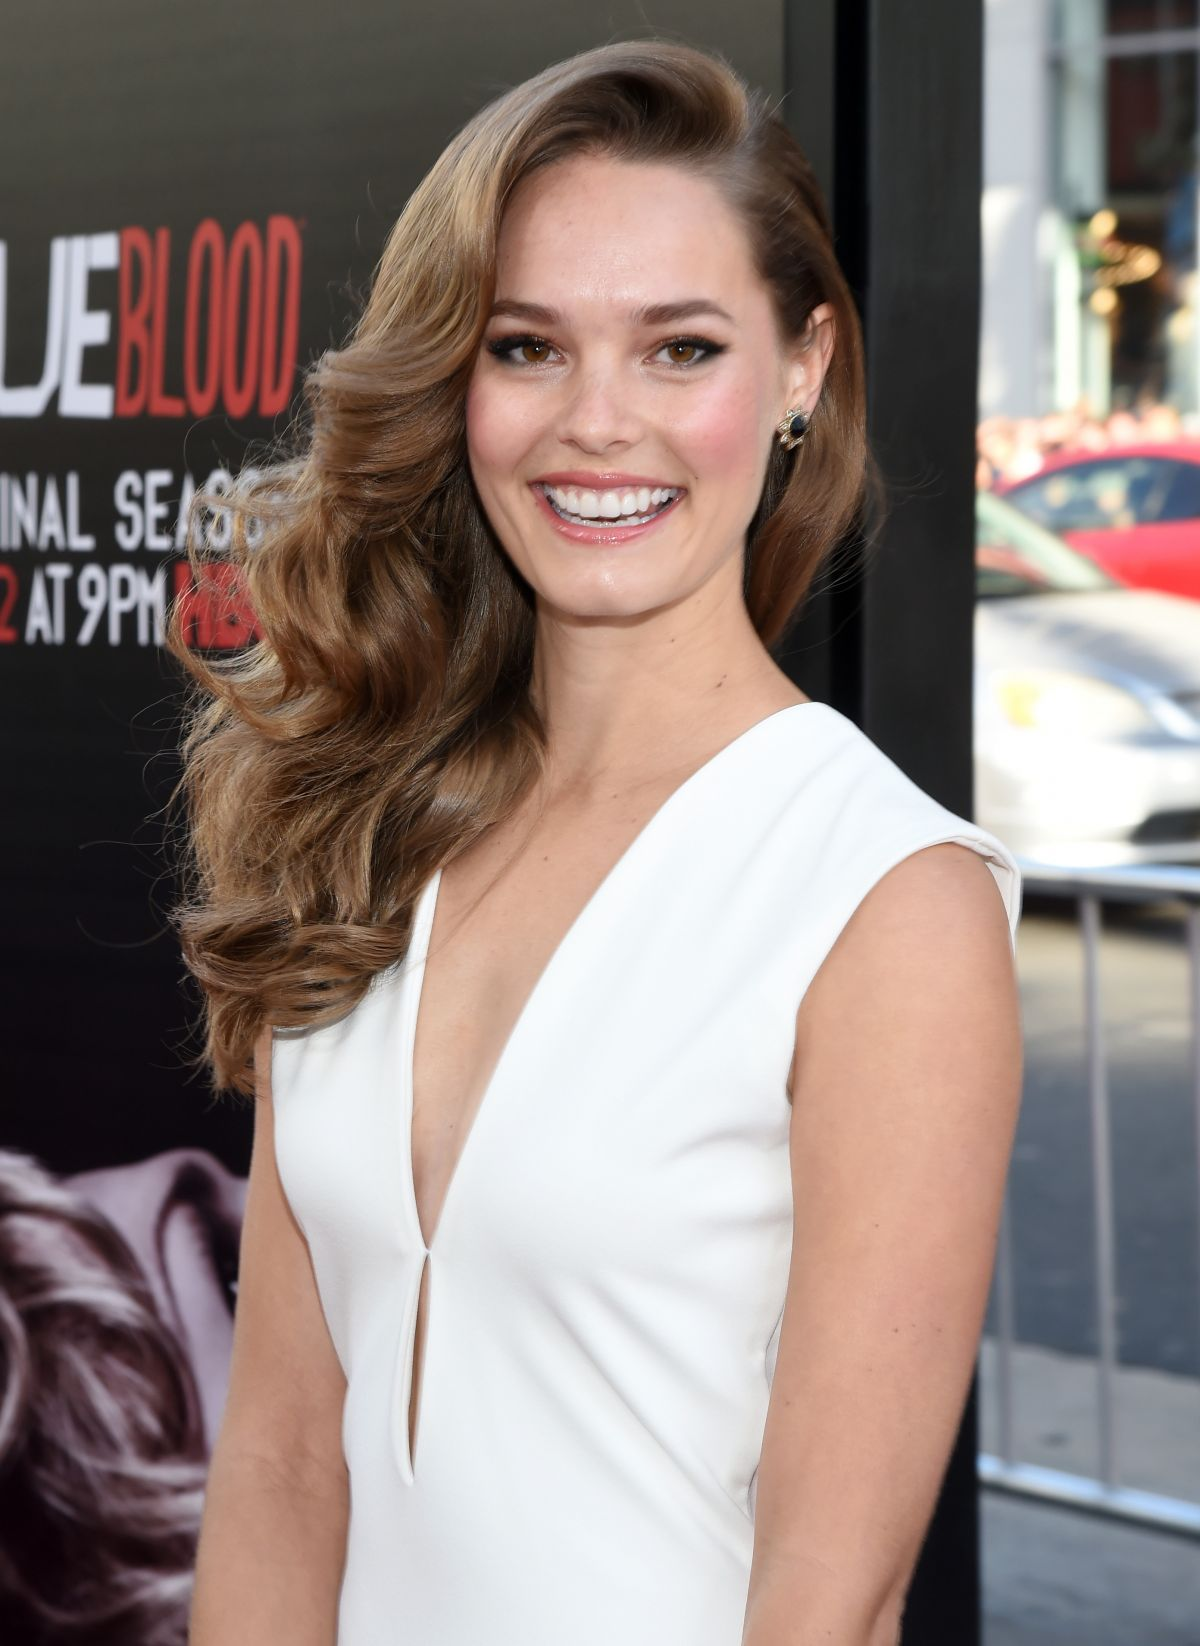 BAILEY NOBLE at True Blood Season 7 Premiere in Hollywood